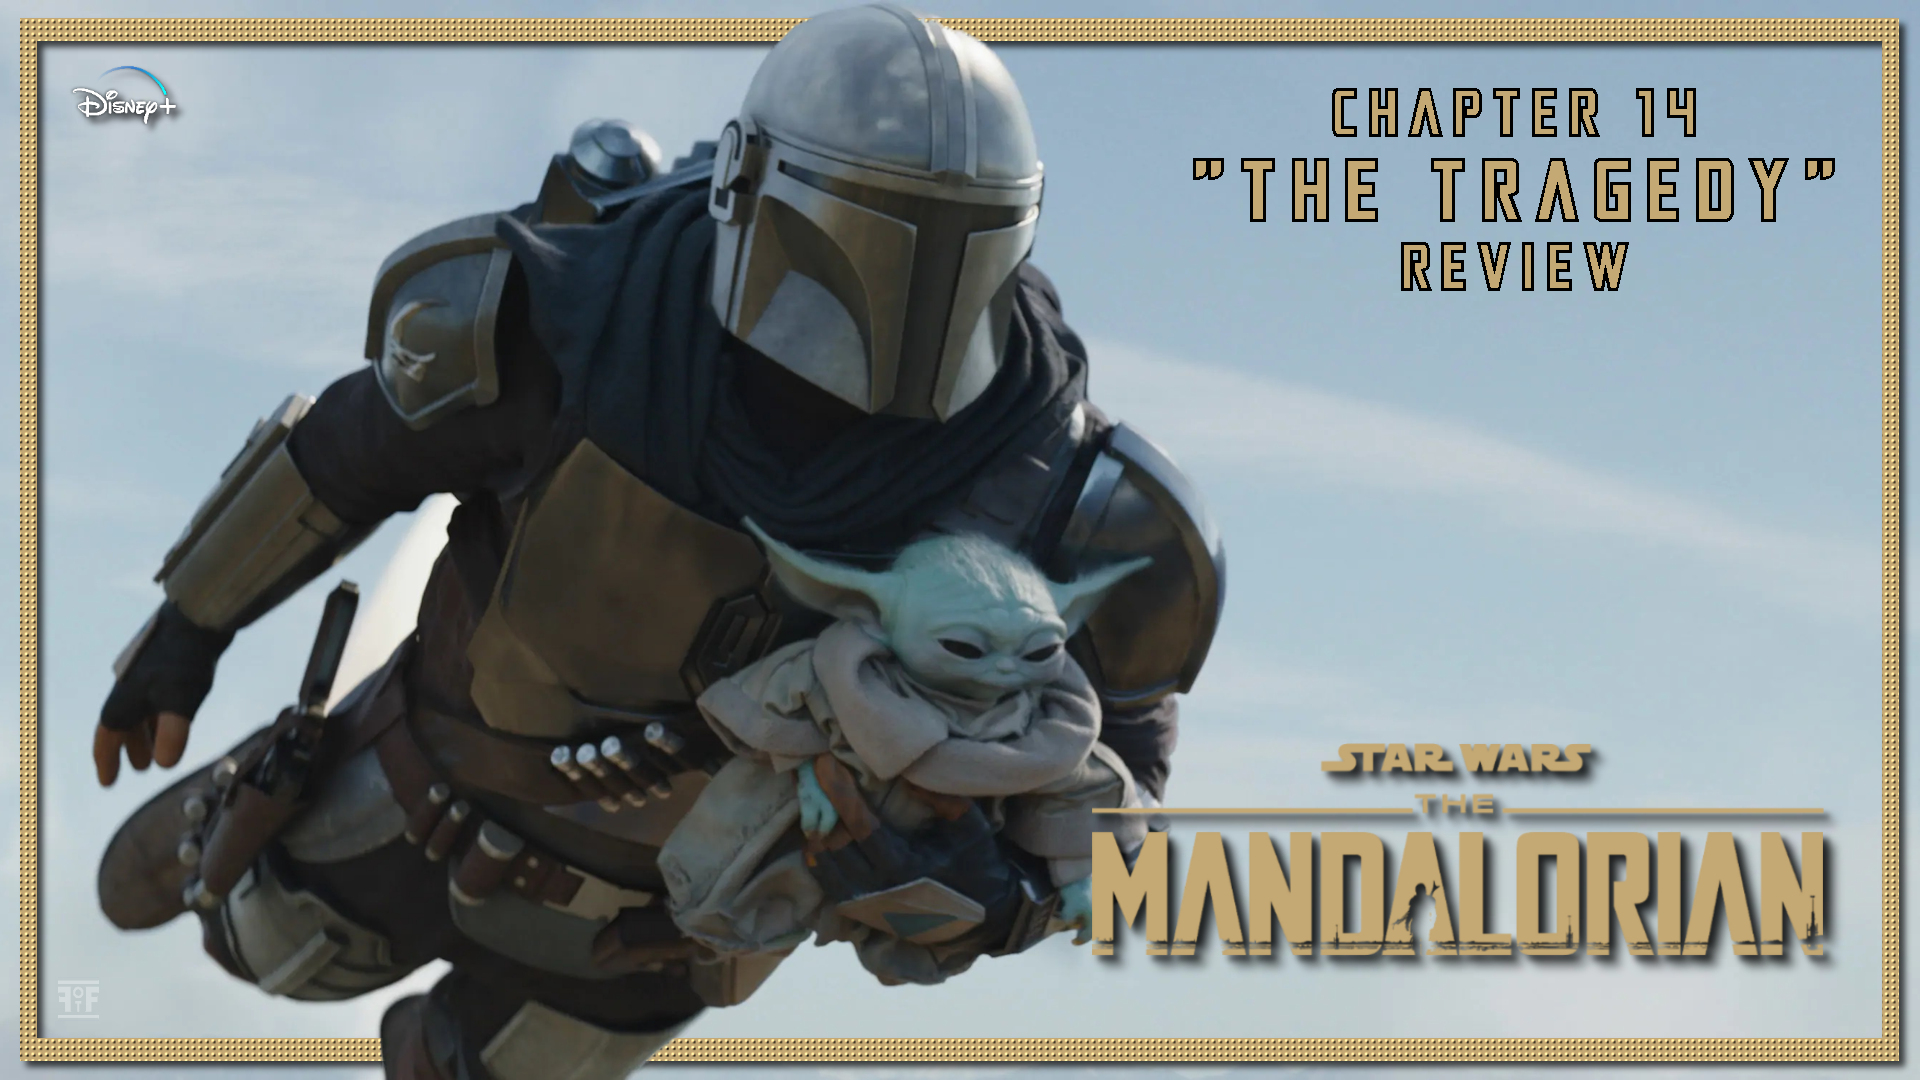 The Mandalorian: Chapter 14 'The Tragedy'